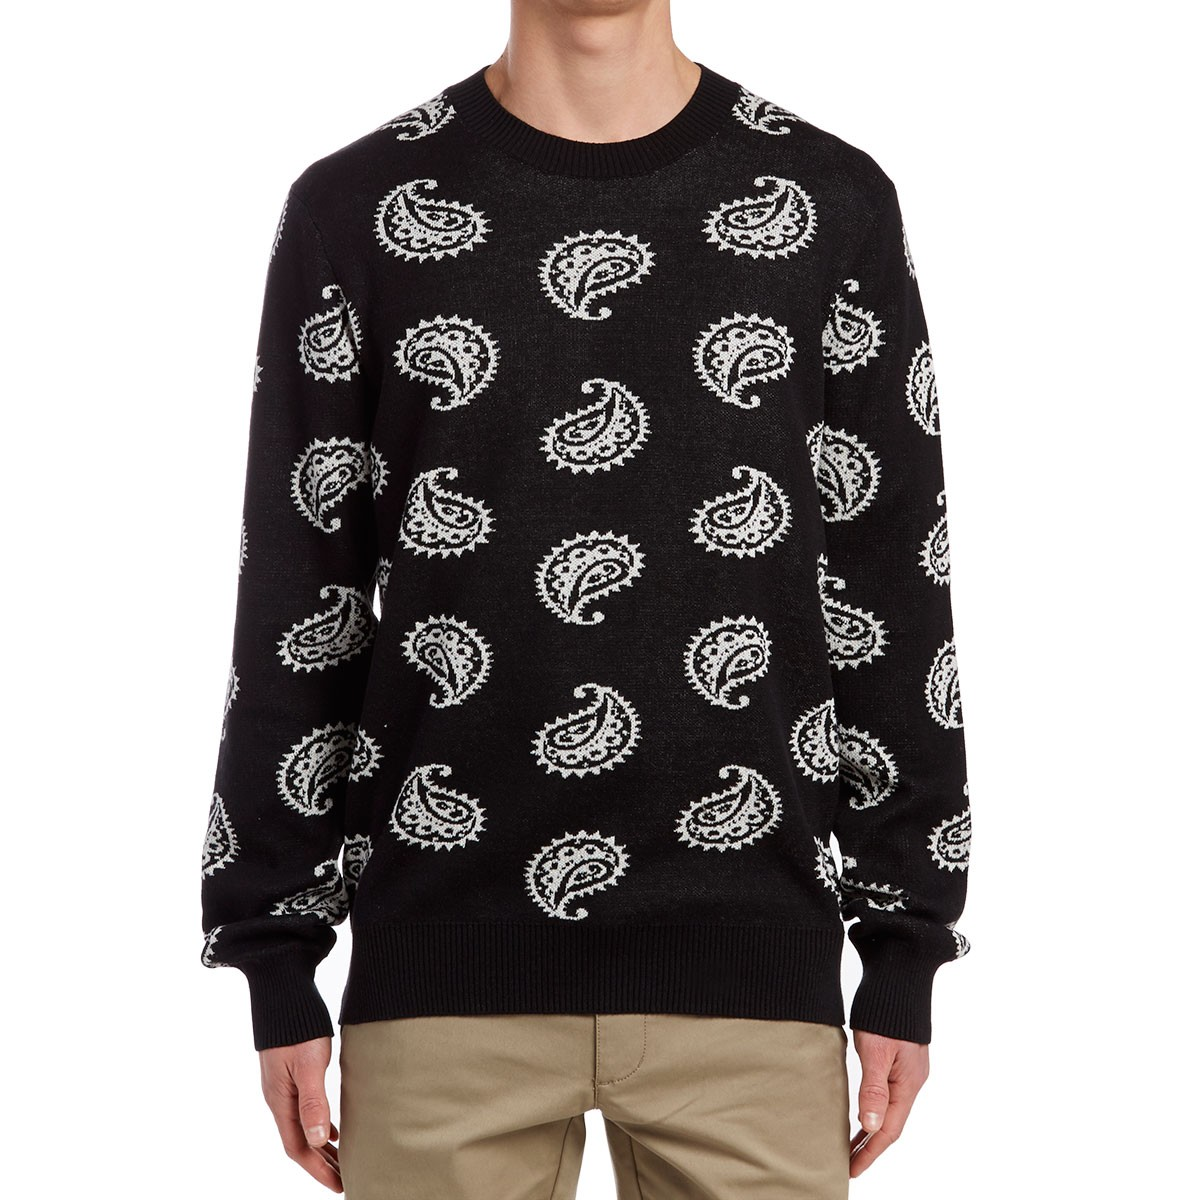 Obey Duren Sweater - Black/White